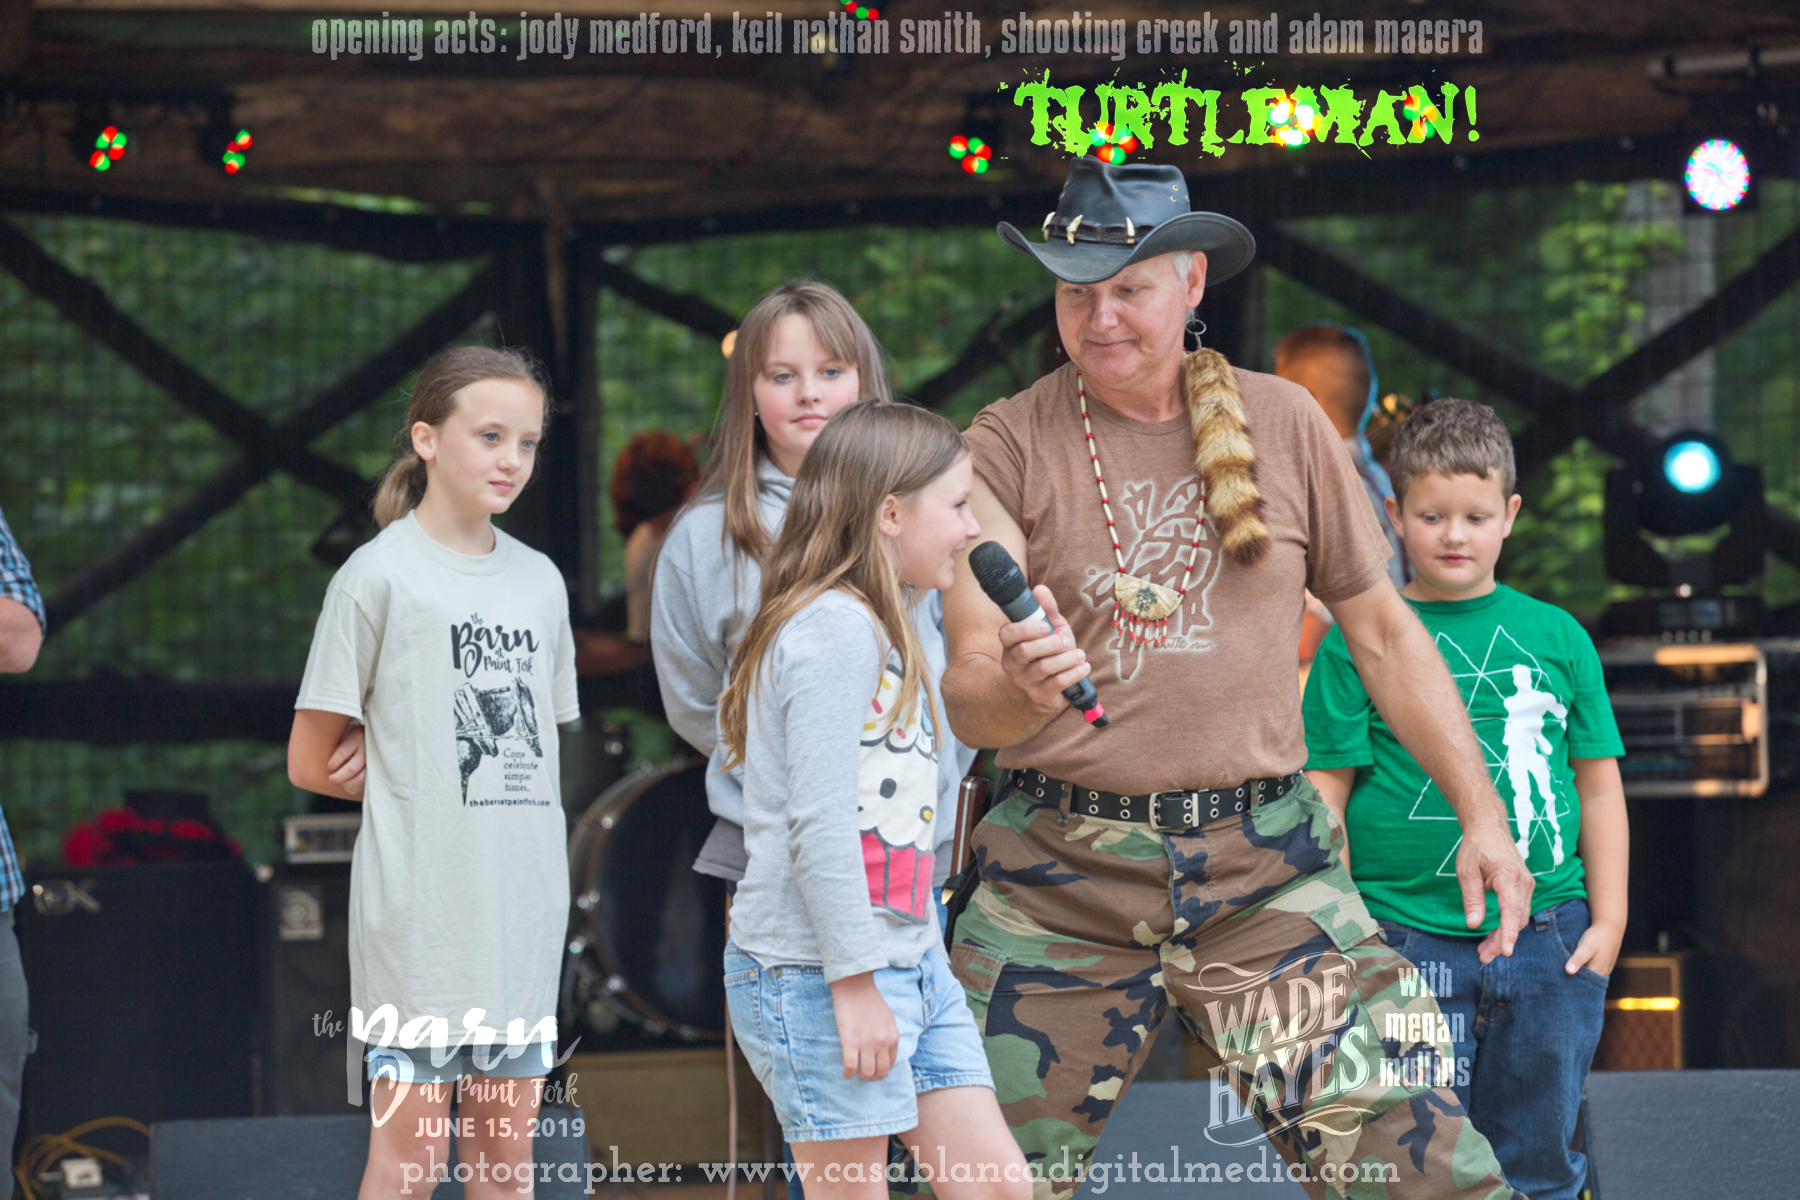 Turtleman from Animal Planet